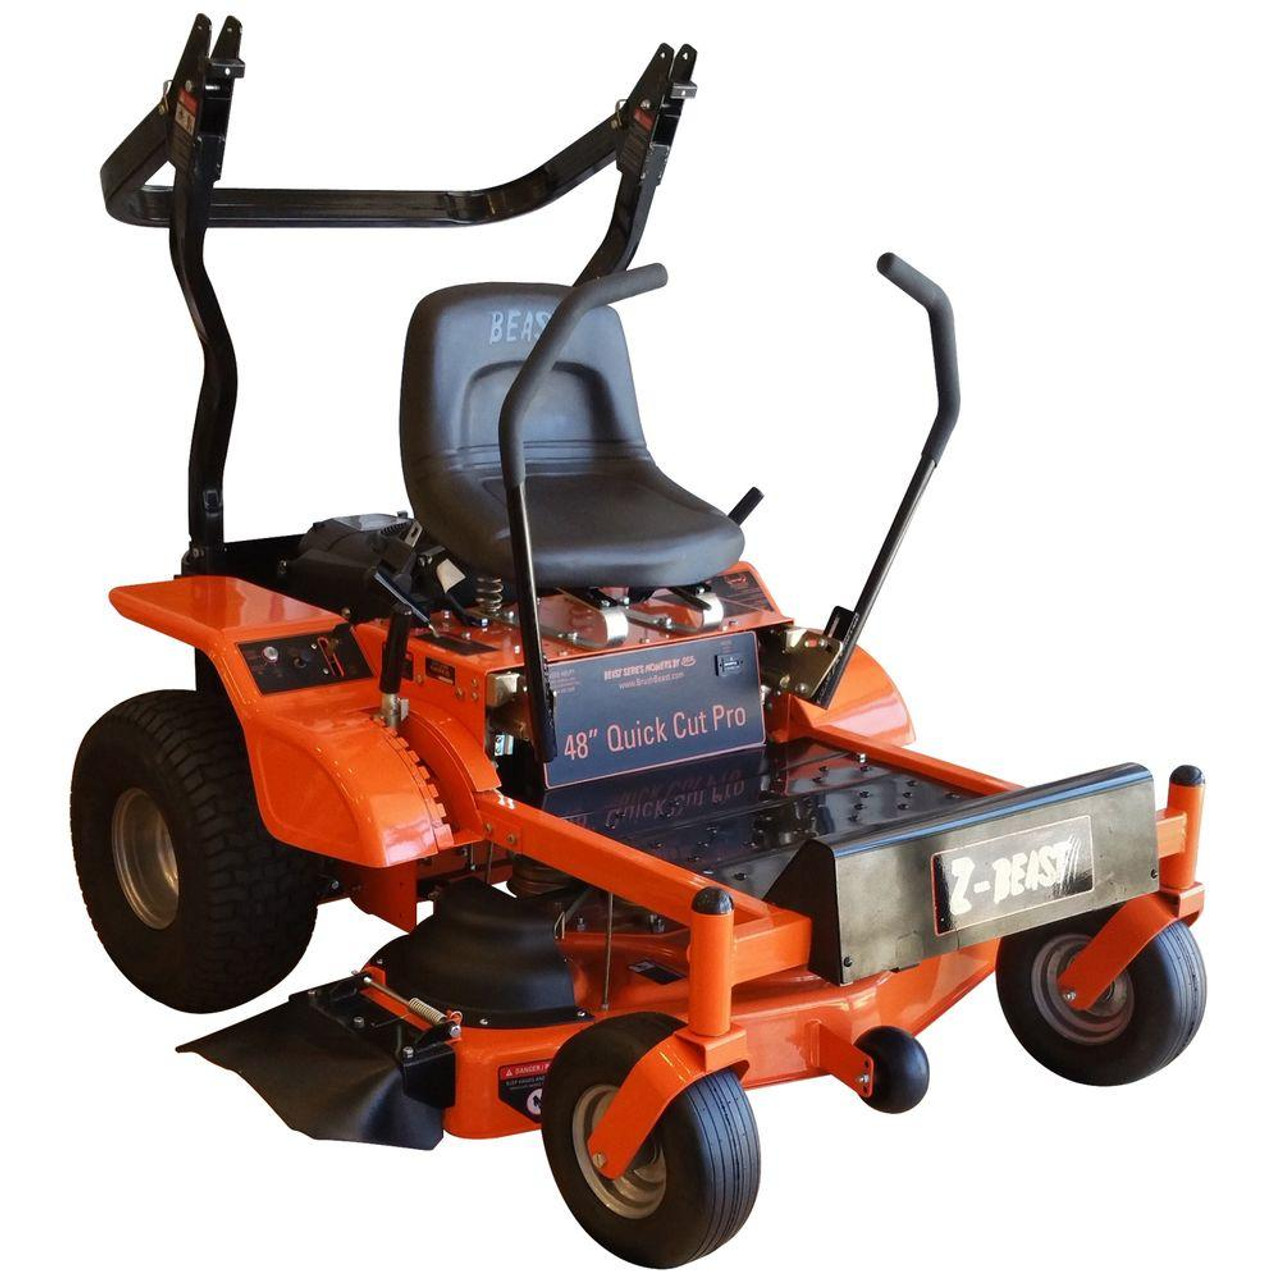 Z-BEAST 48 in  Zero Turn Riding Mower with powerful dual hydrostatic  drives  Powered by a 20 HP Briggs & Stratton Pro Series Engine  COMMERCIAL